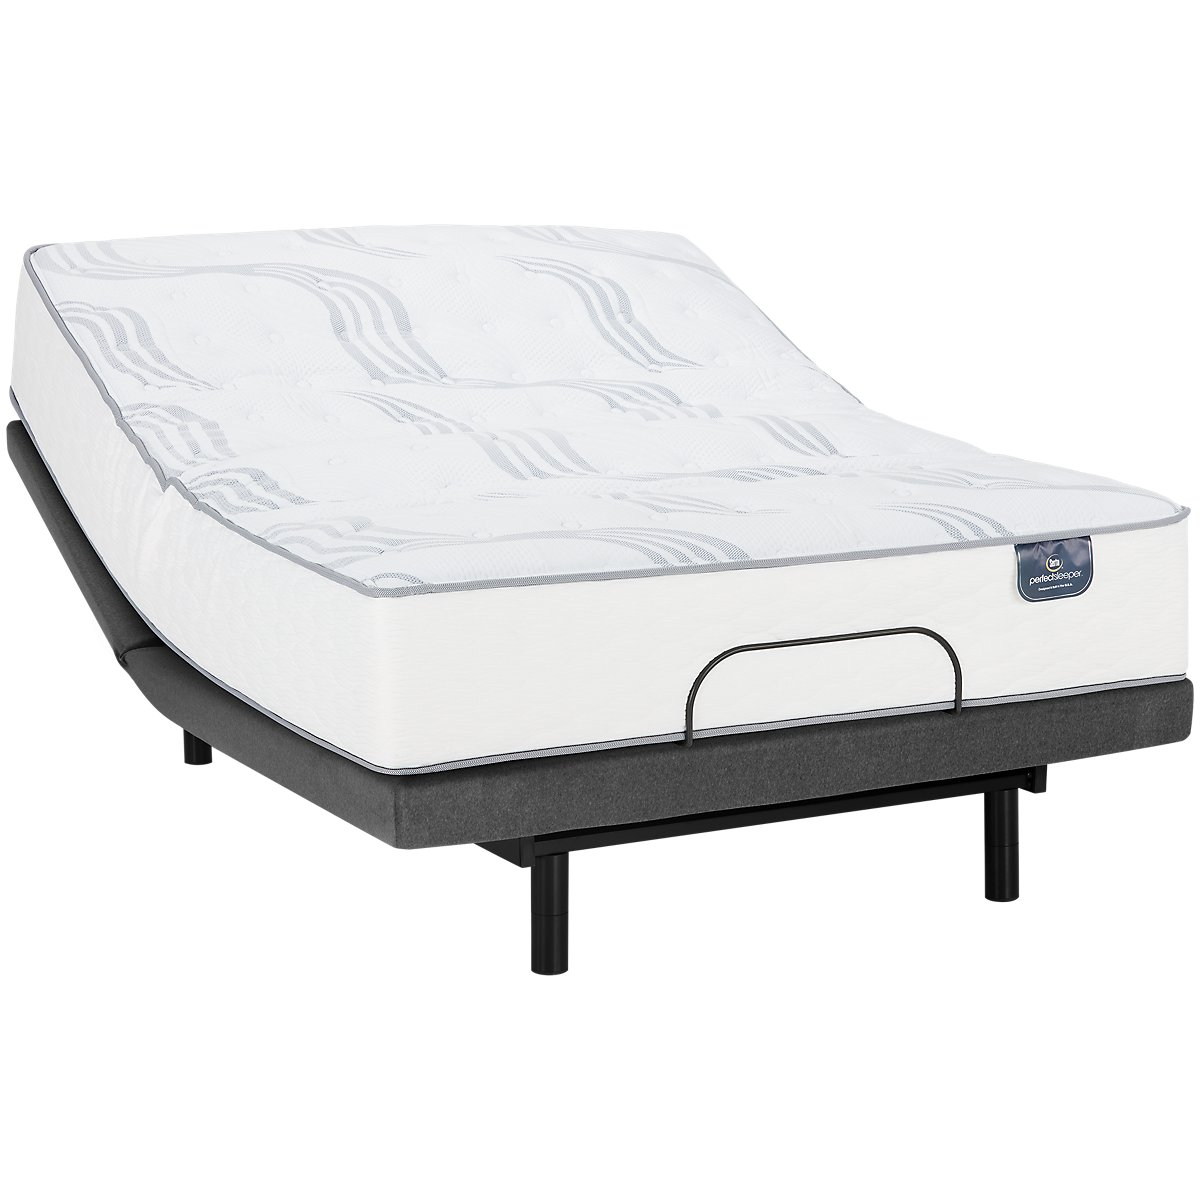 Serta Perfect Sleeper Blomquist Luxury Firm Select Adjustable Mattress Set